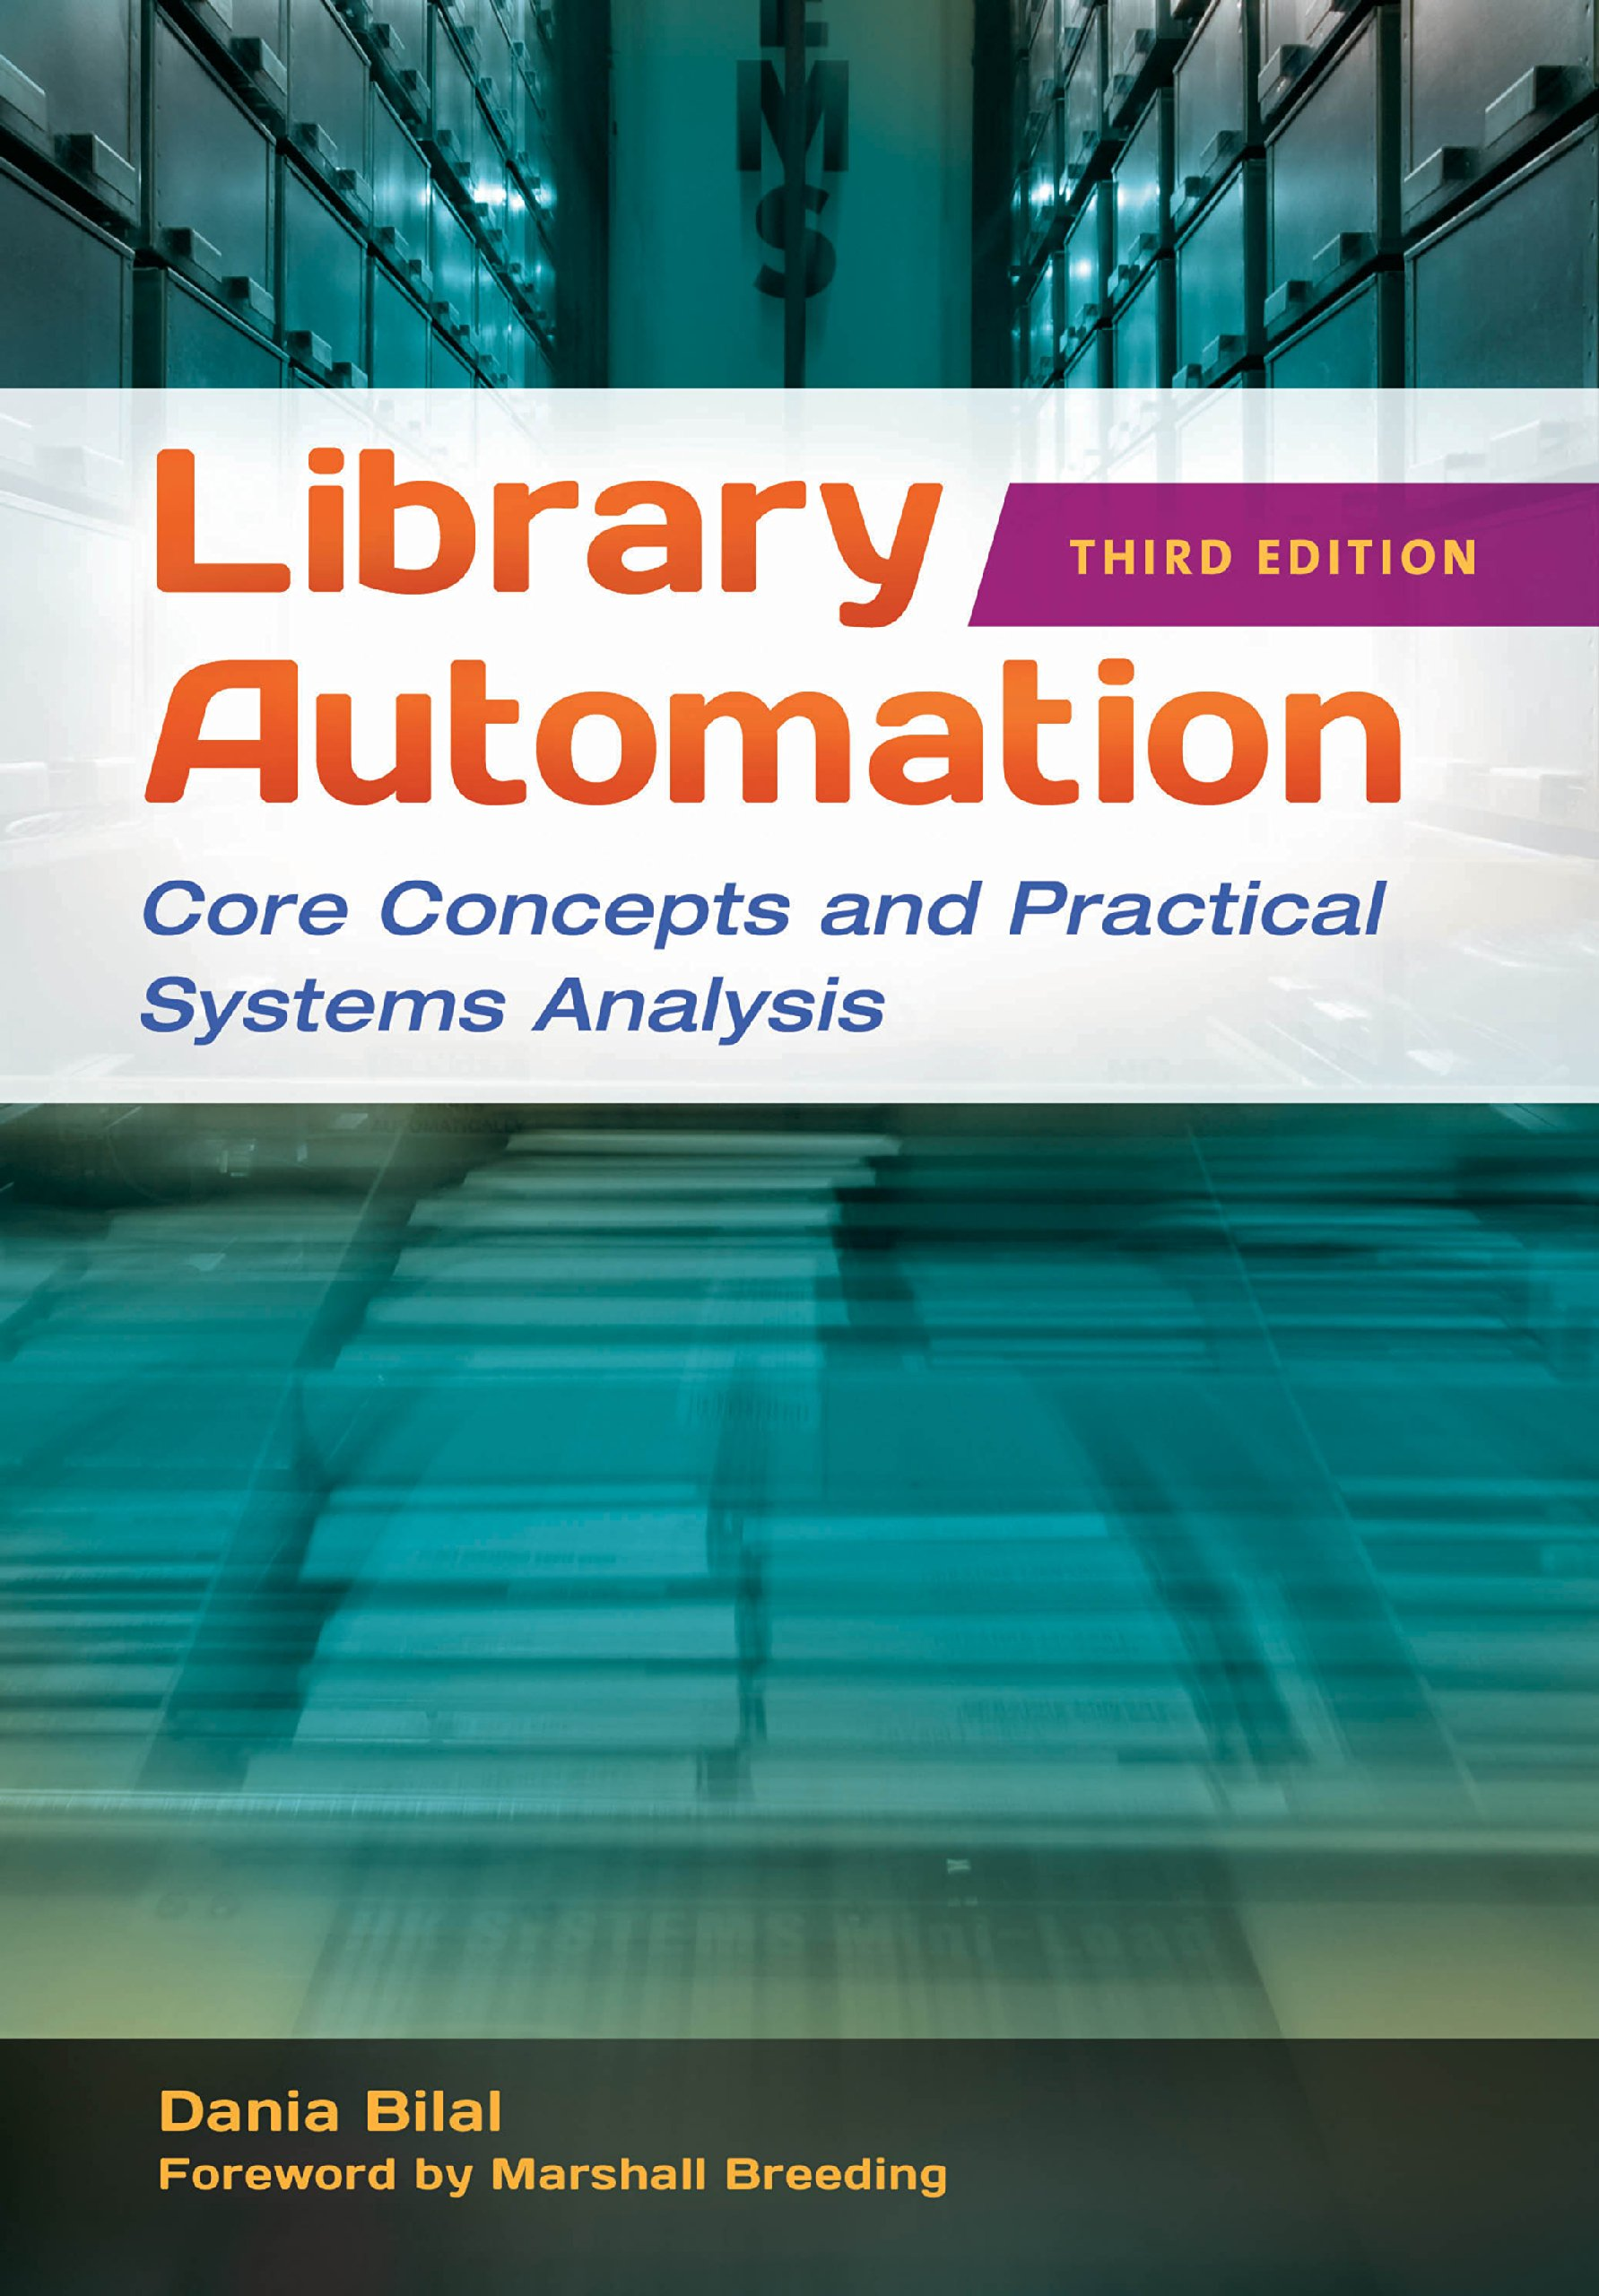 Amazon Com Library Automation Core Concepts And Practical Systems Analysis 3rd Edition Ebook Bilal Dania Kindle Store